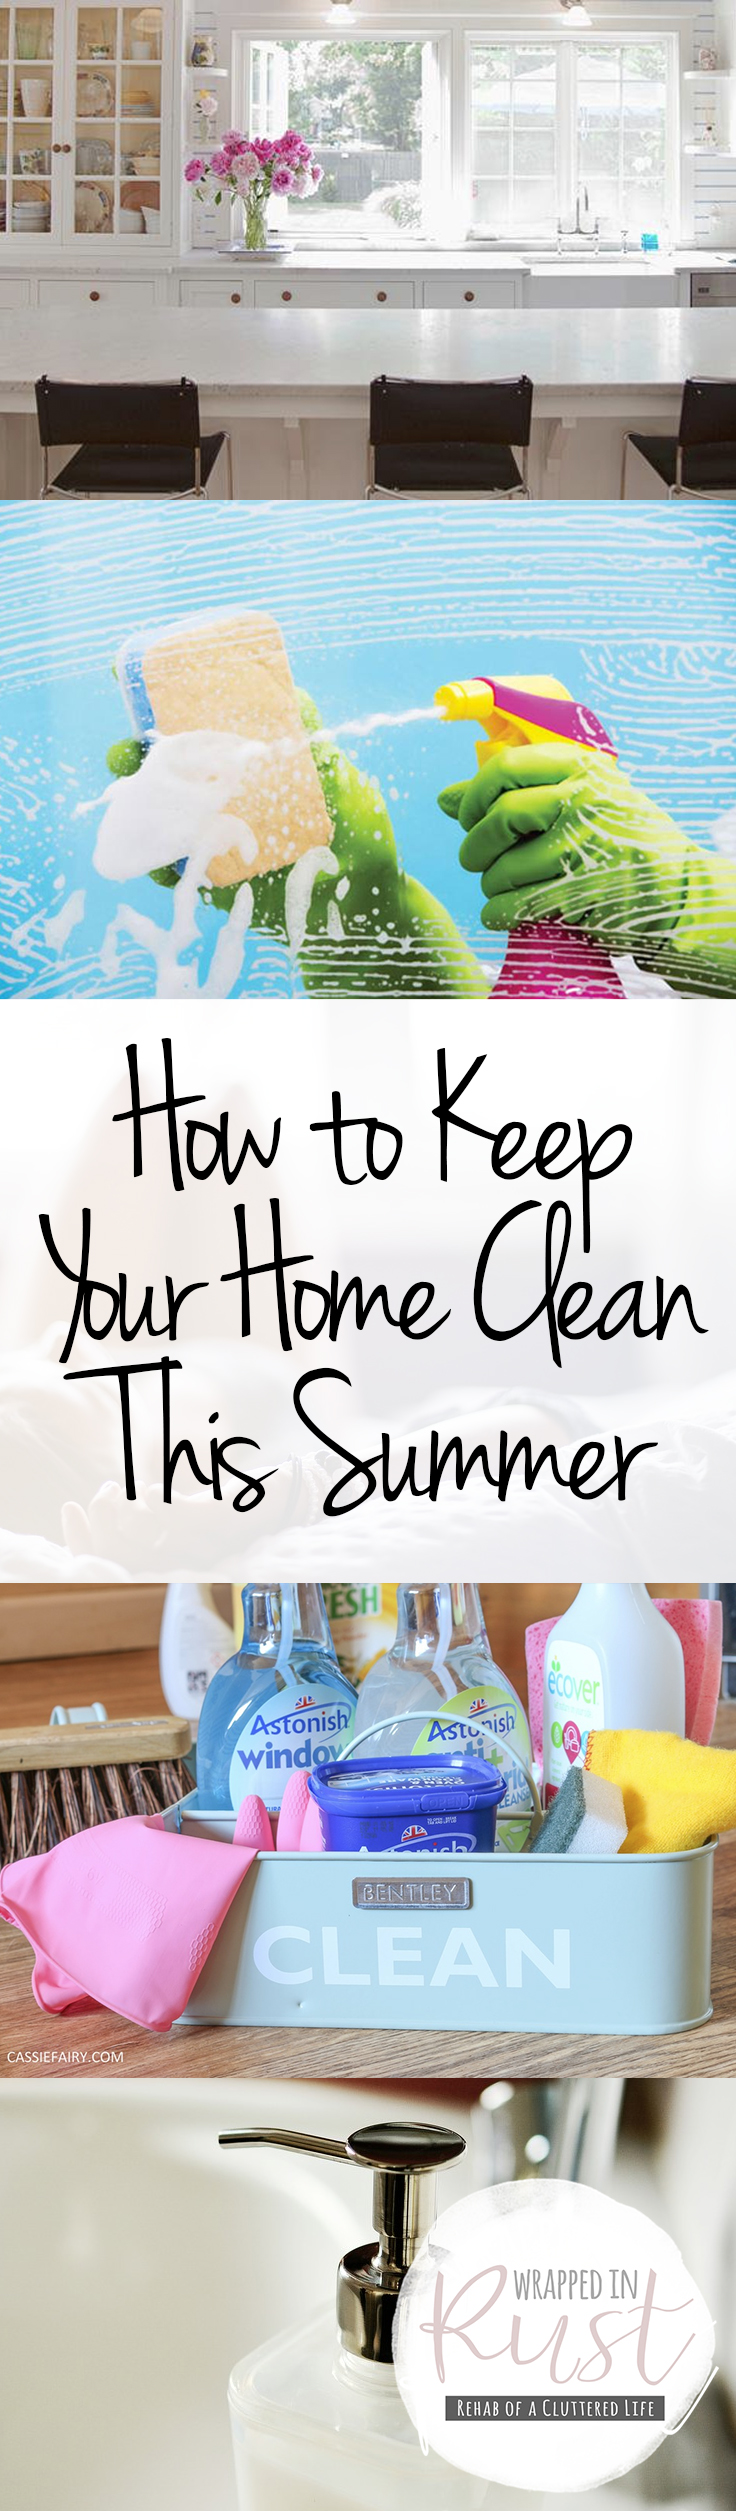 How To Keep Your Home Clean This Summer Wrapped In Rust